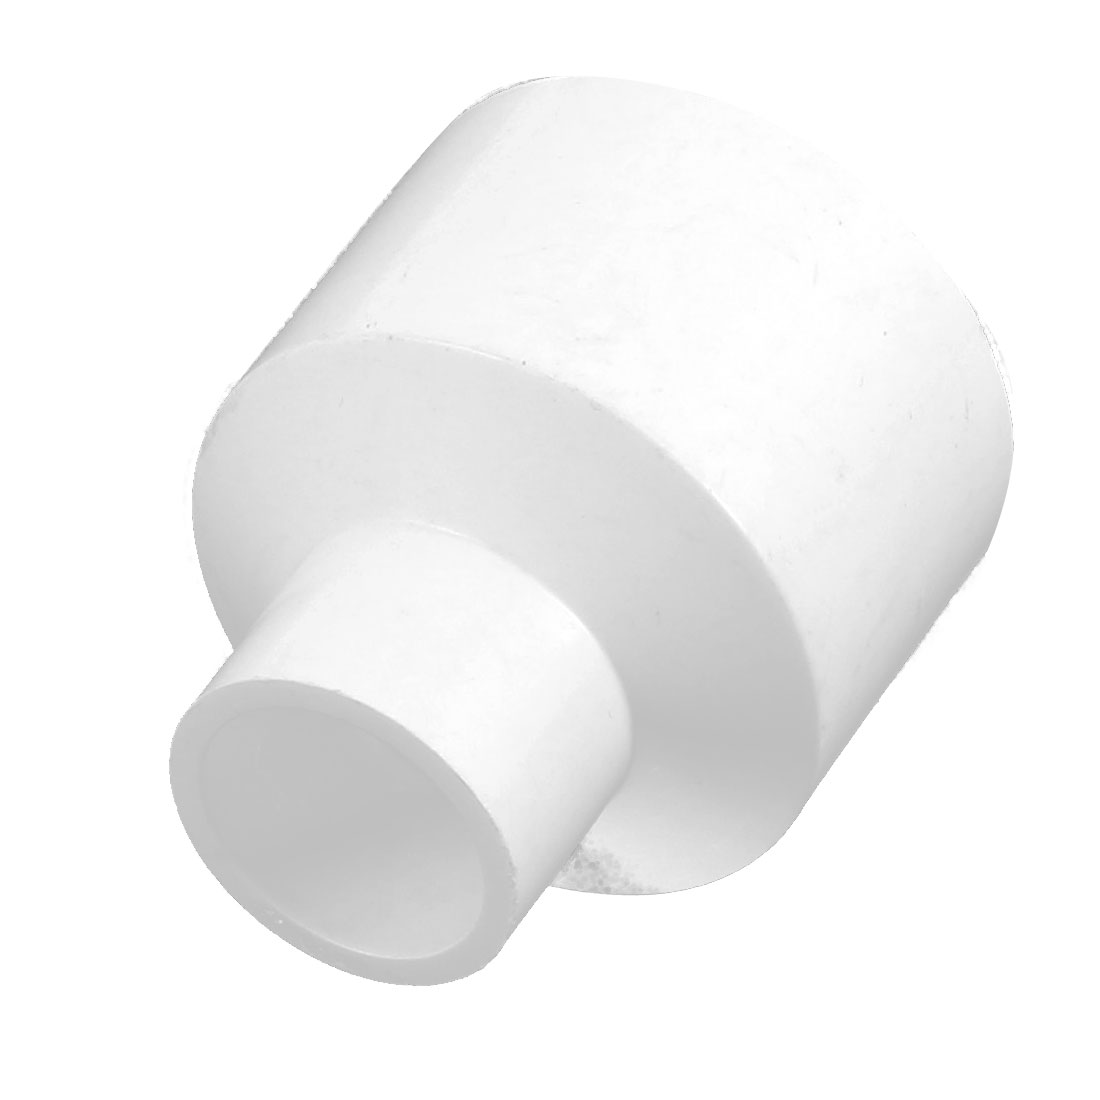 40mm 20mm Inner Hole Dia Two Way PVC Water Pipe Hose Coupler Connector White